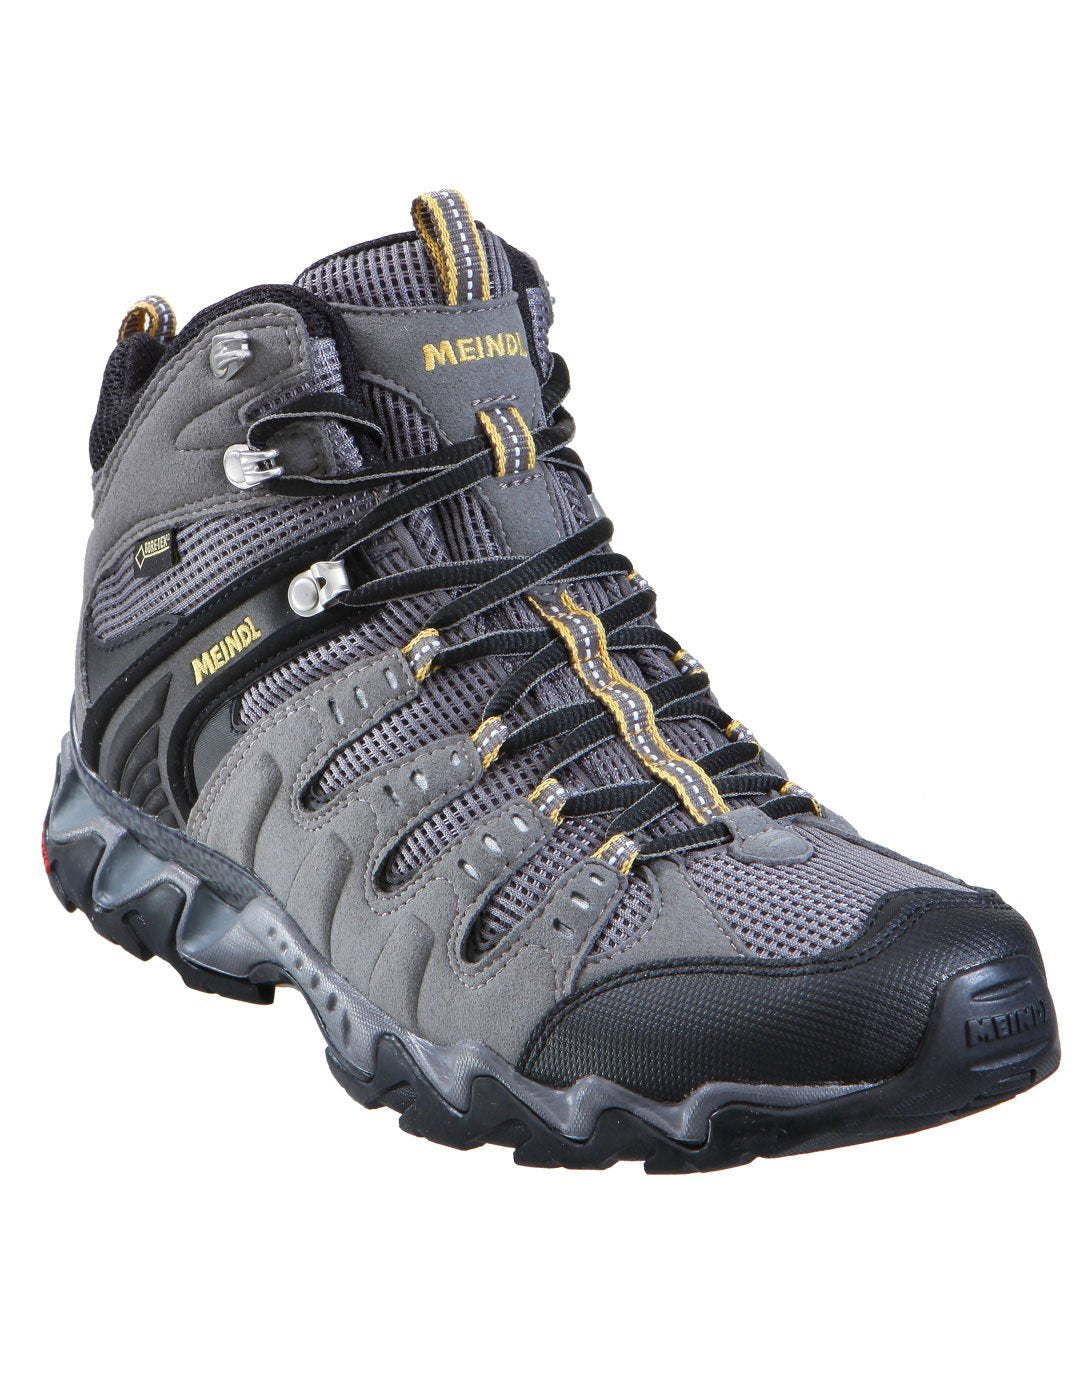 82c16d7889f Mens Respond Mid GTX Hiking Boot - Anthracite and Maize